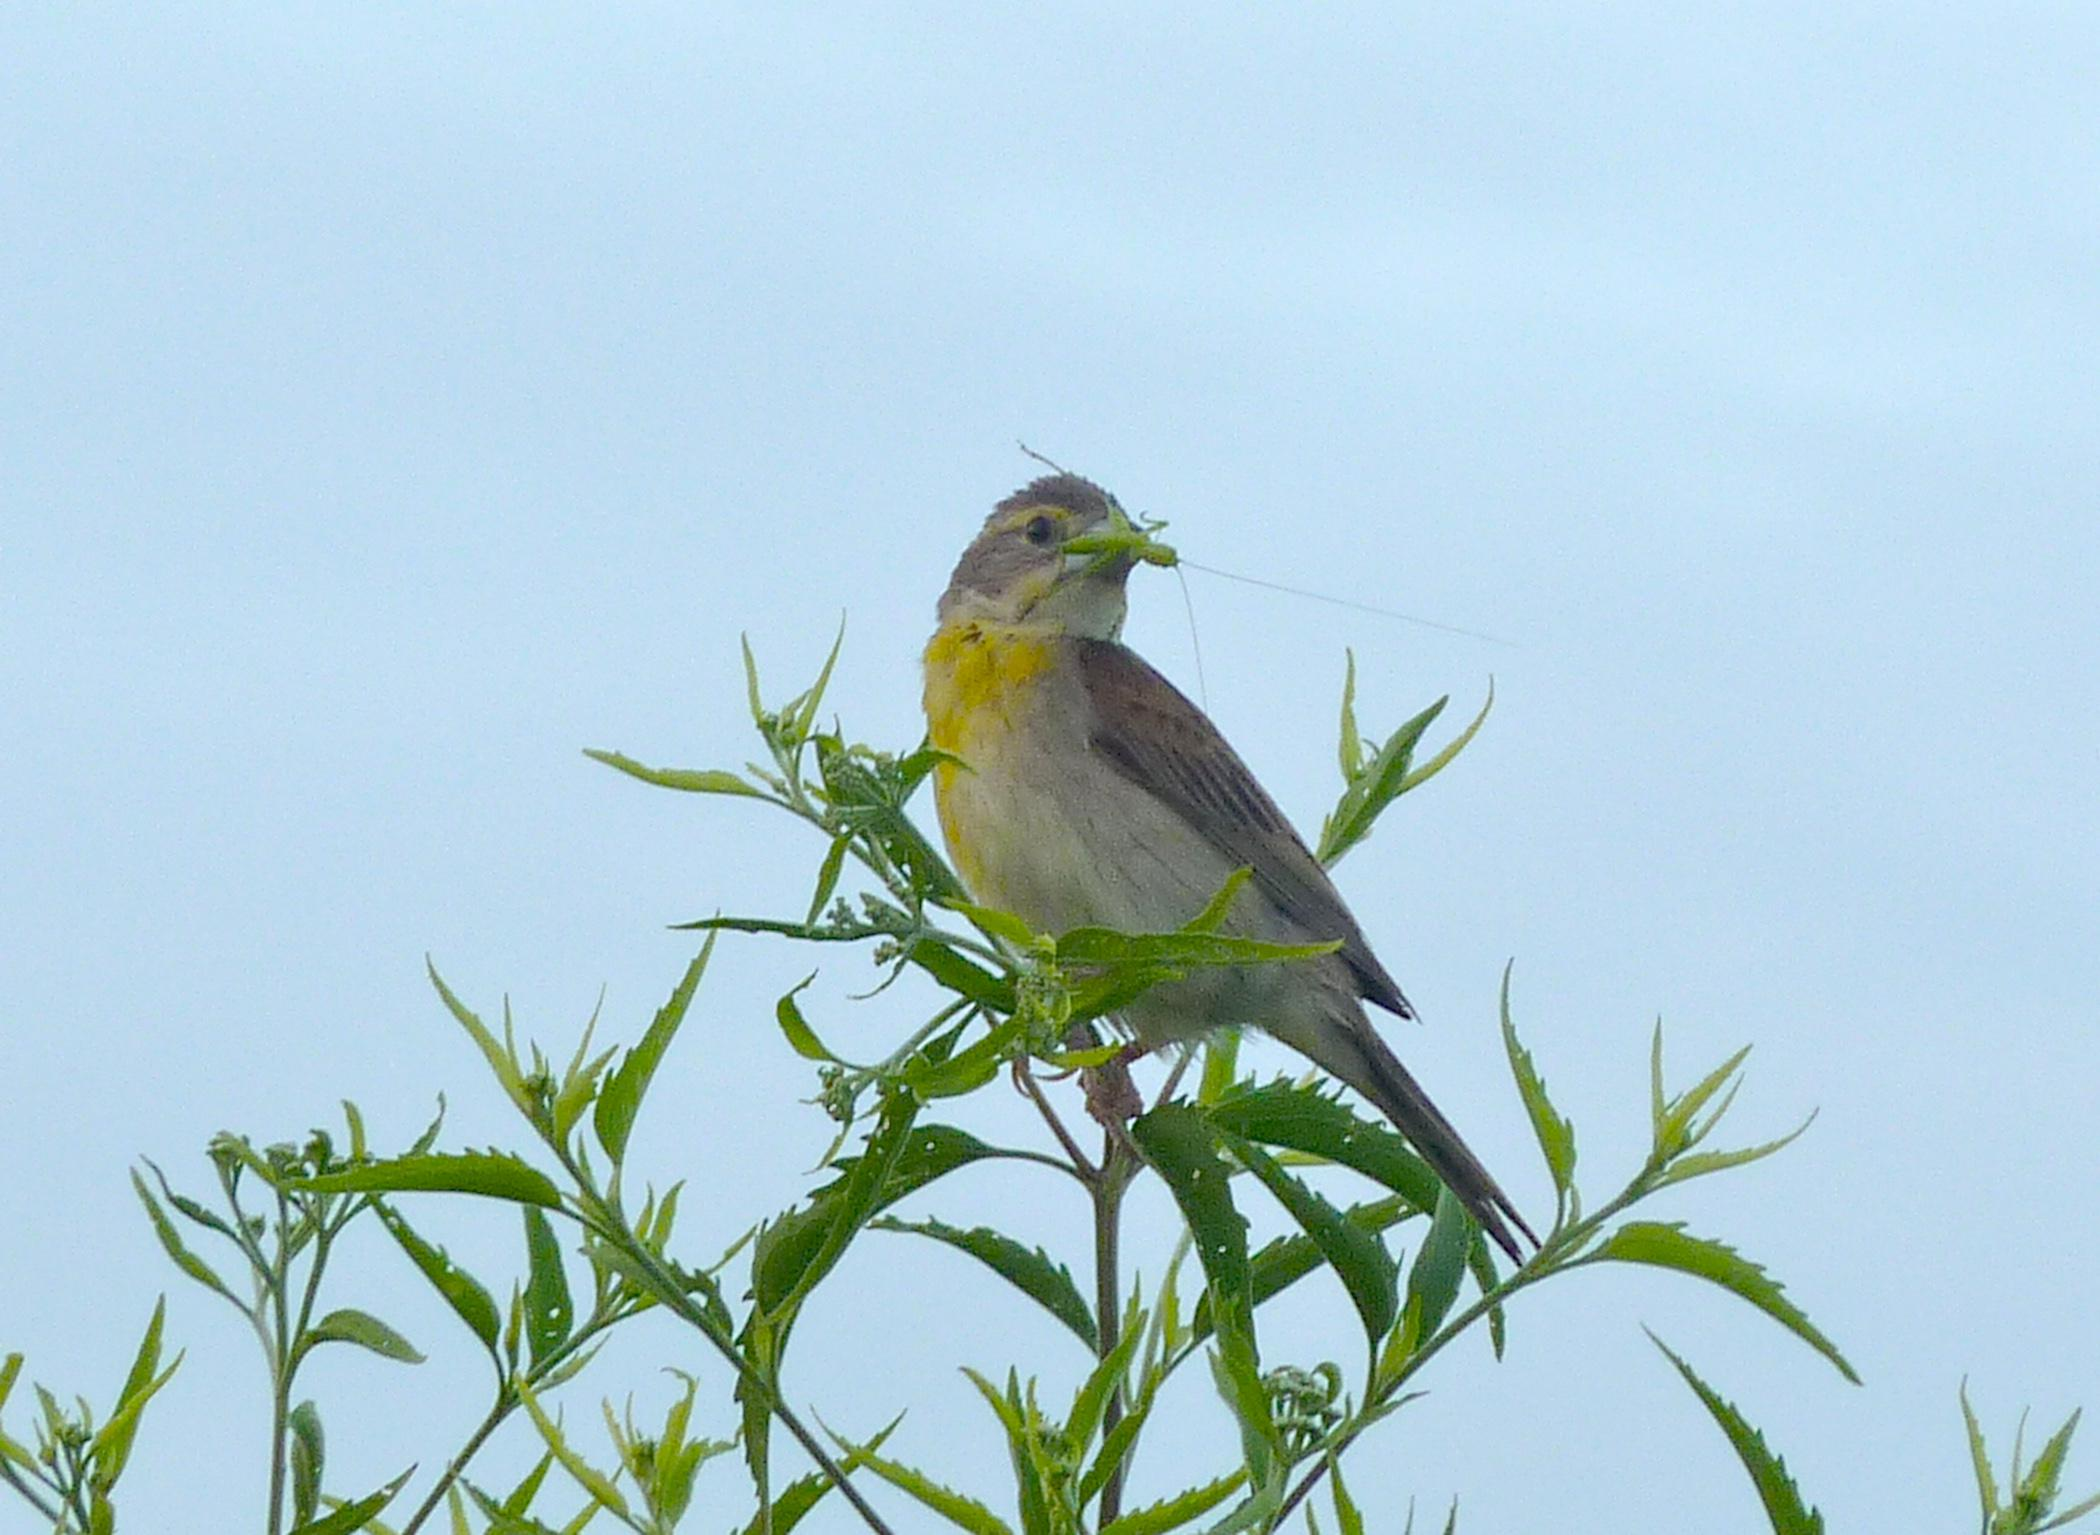 Dickcissels, such as this one, are sparrow-sized birds that prefer native grasslands for foraging and nesting and rely on insects for the bulk of their diet. Mississippi State University scientists are studying the use of native grasses as livestock forages. (Photo courtesy of Adrian Monroe)